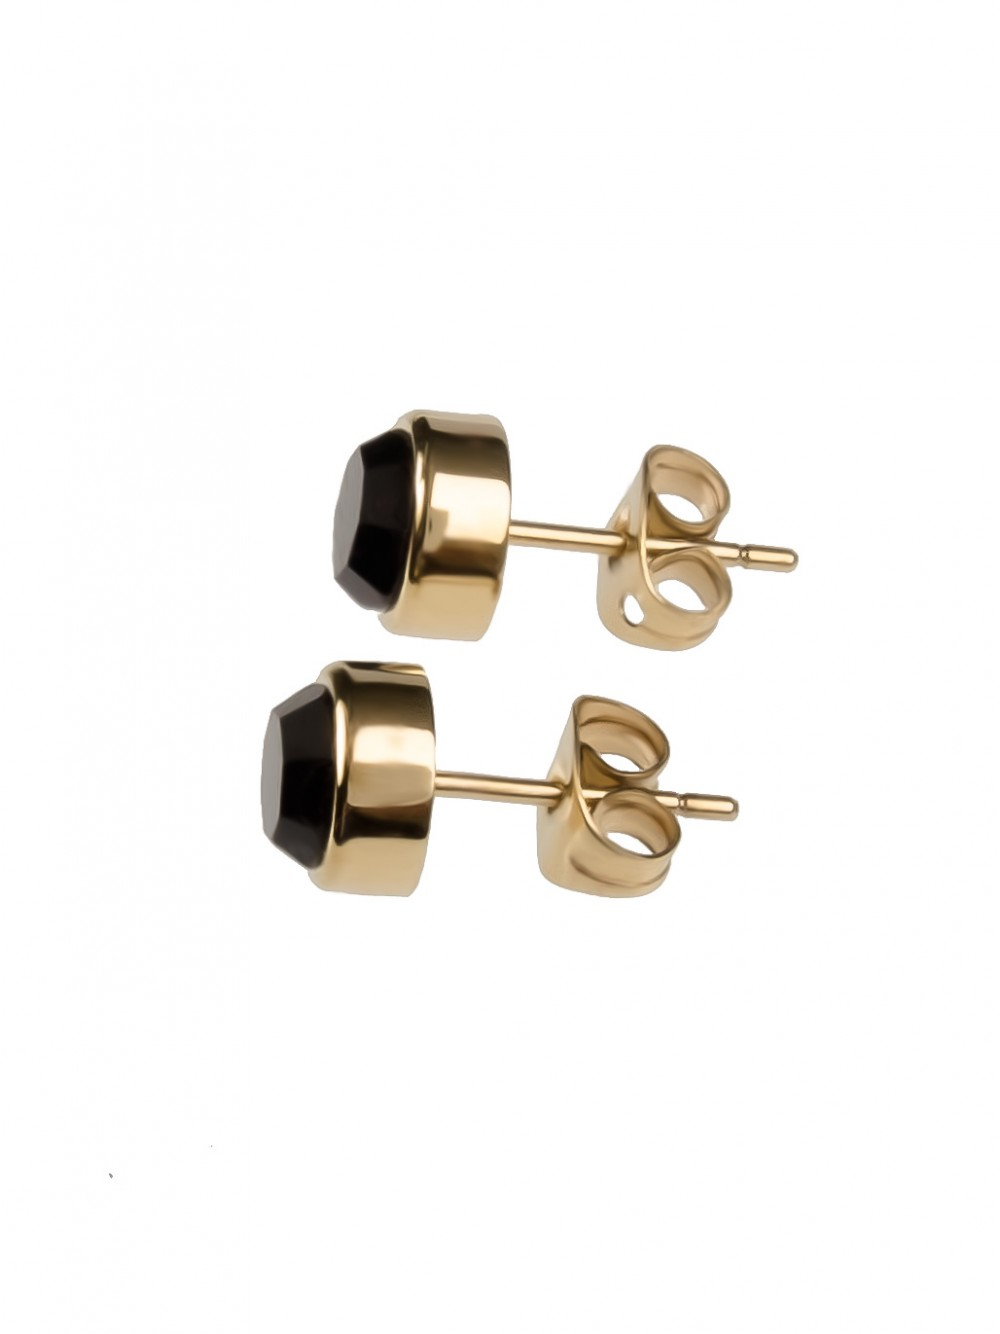 EAR STUDS GOLDEN CRUMBS